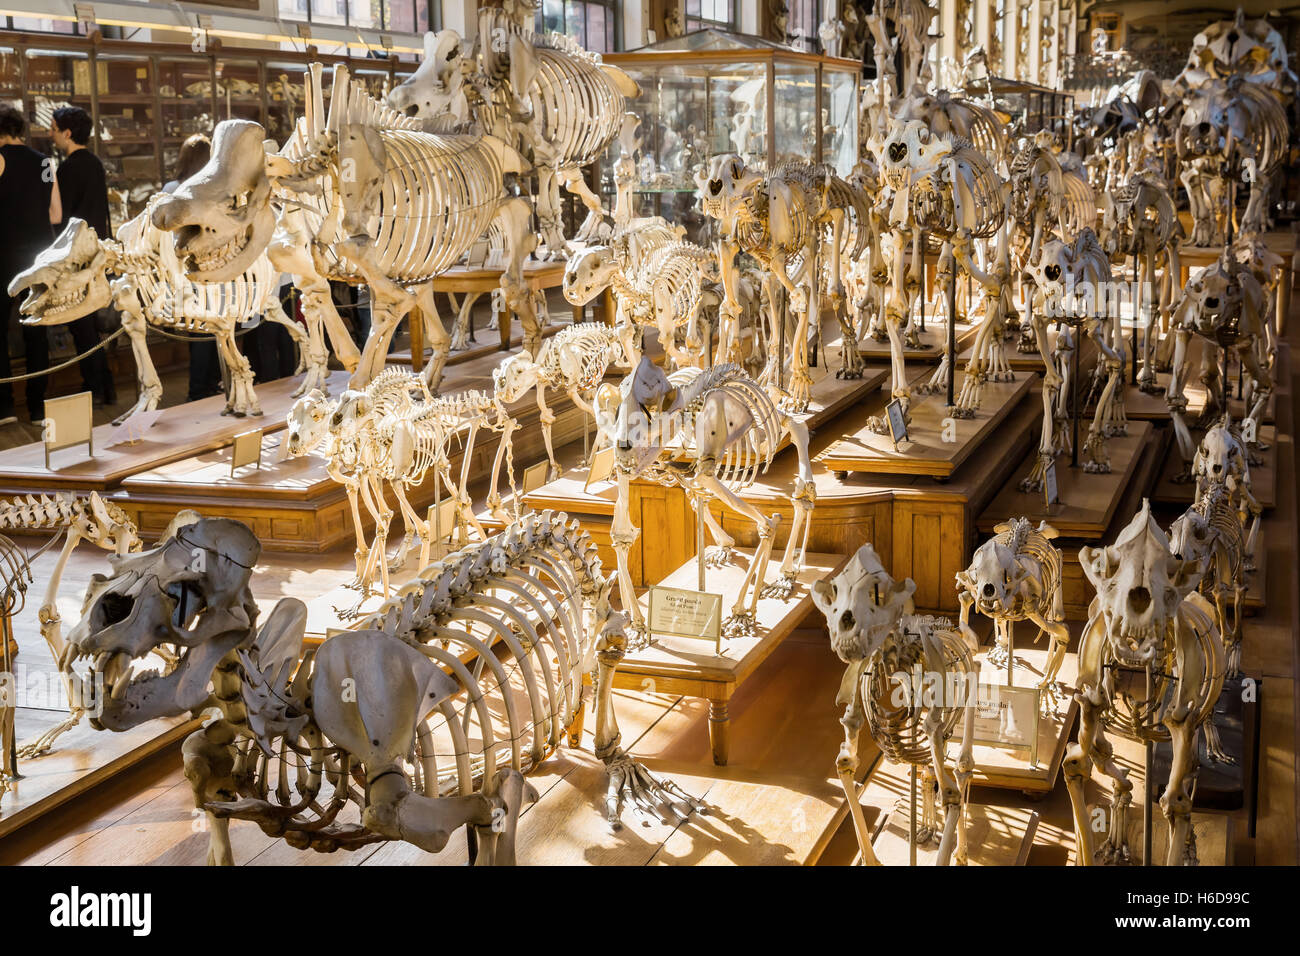 skeletons of animals in the Gallery of Palaeontology and Comparative Anatomy in Paris, France - Stock Image